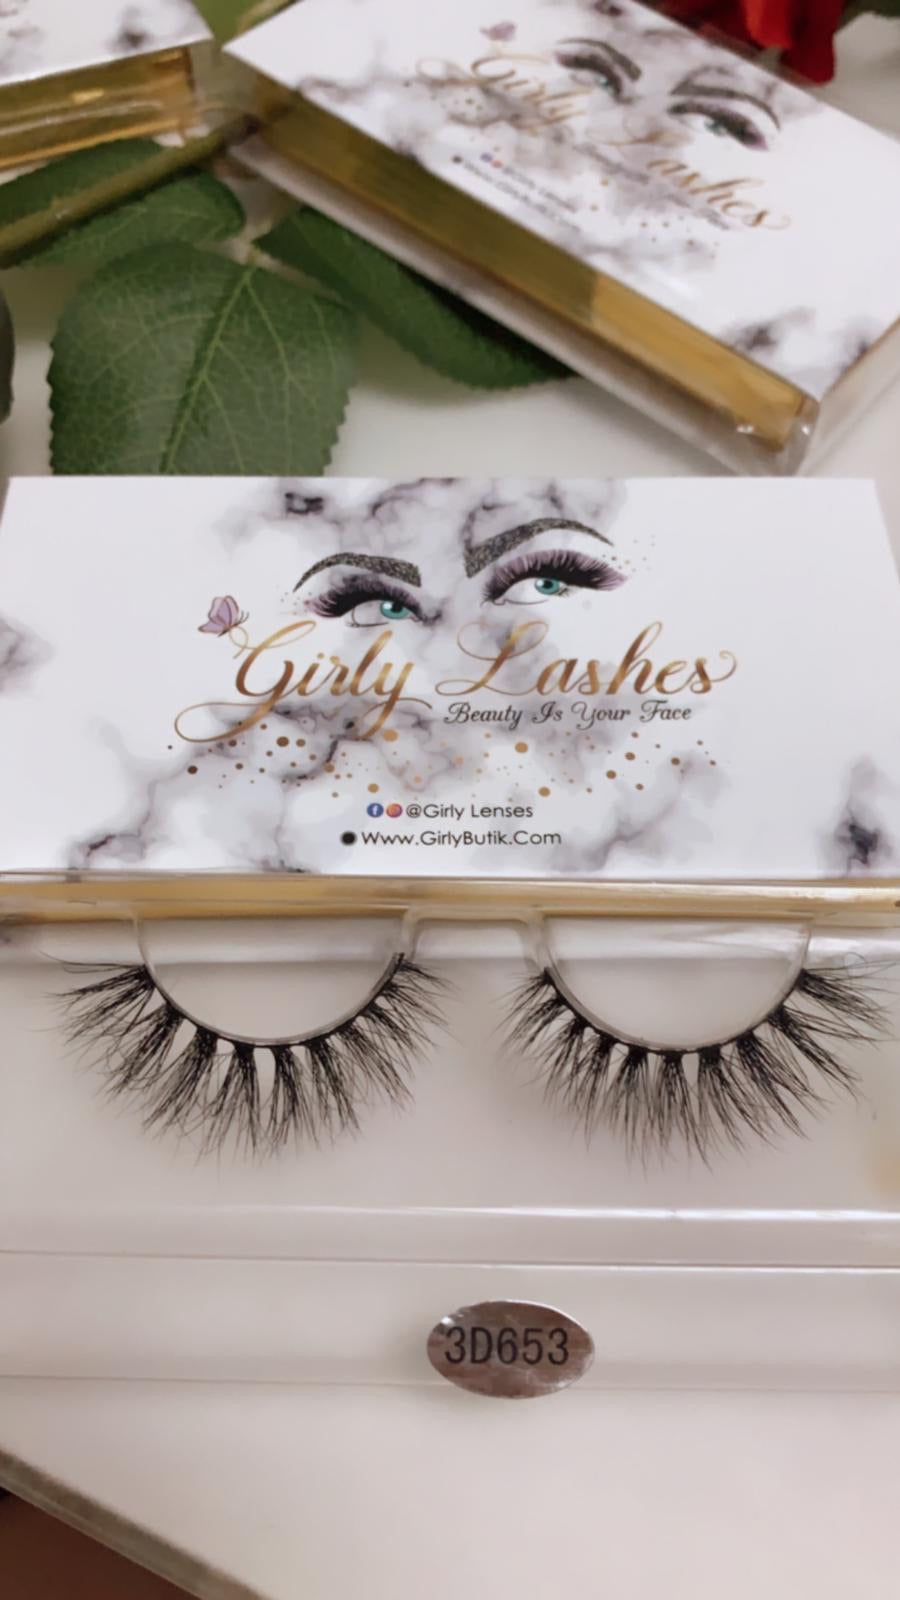 Girly Lashes - Model 3D653